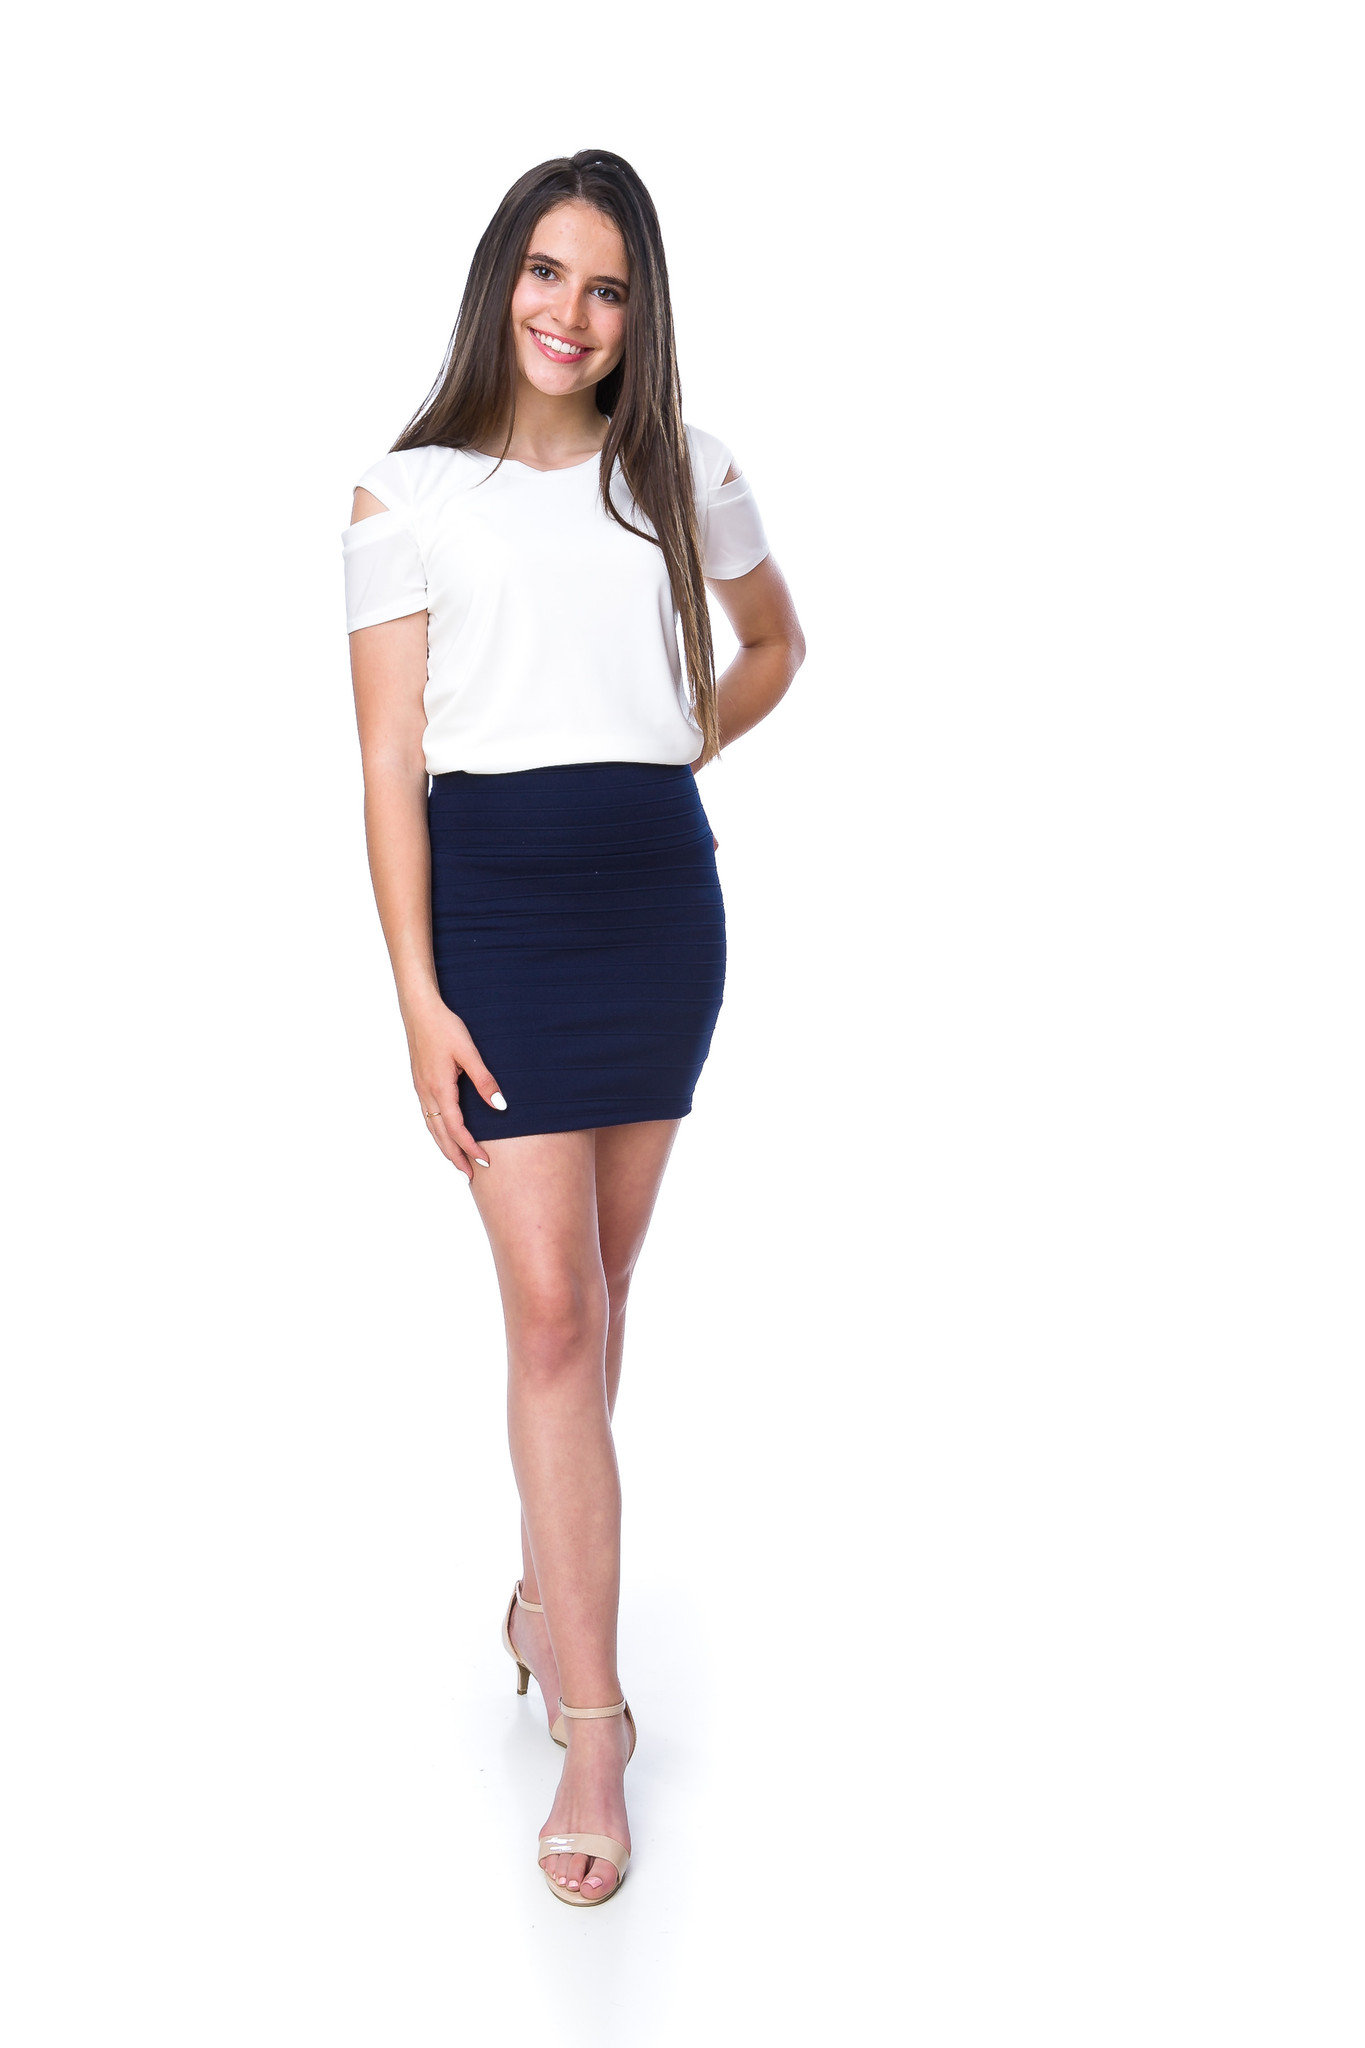 Shop the latest Tween Girls Pencil Skirts in Navy Stripe for all those parties, events and religious services.